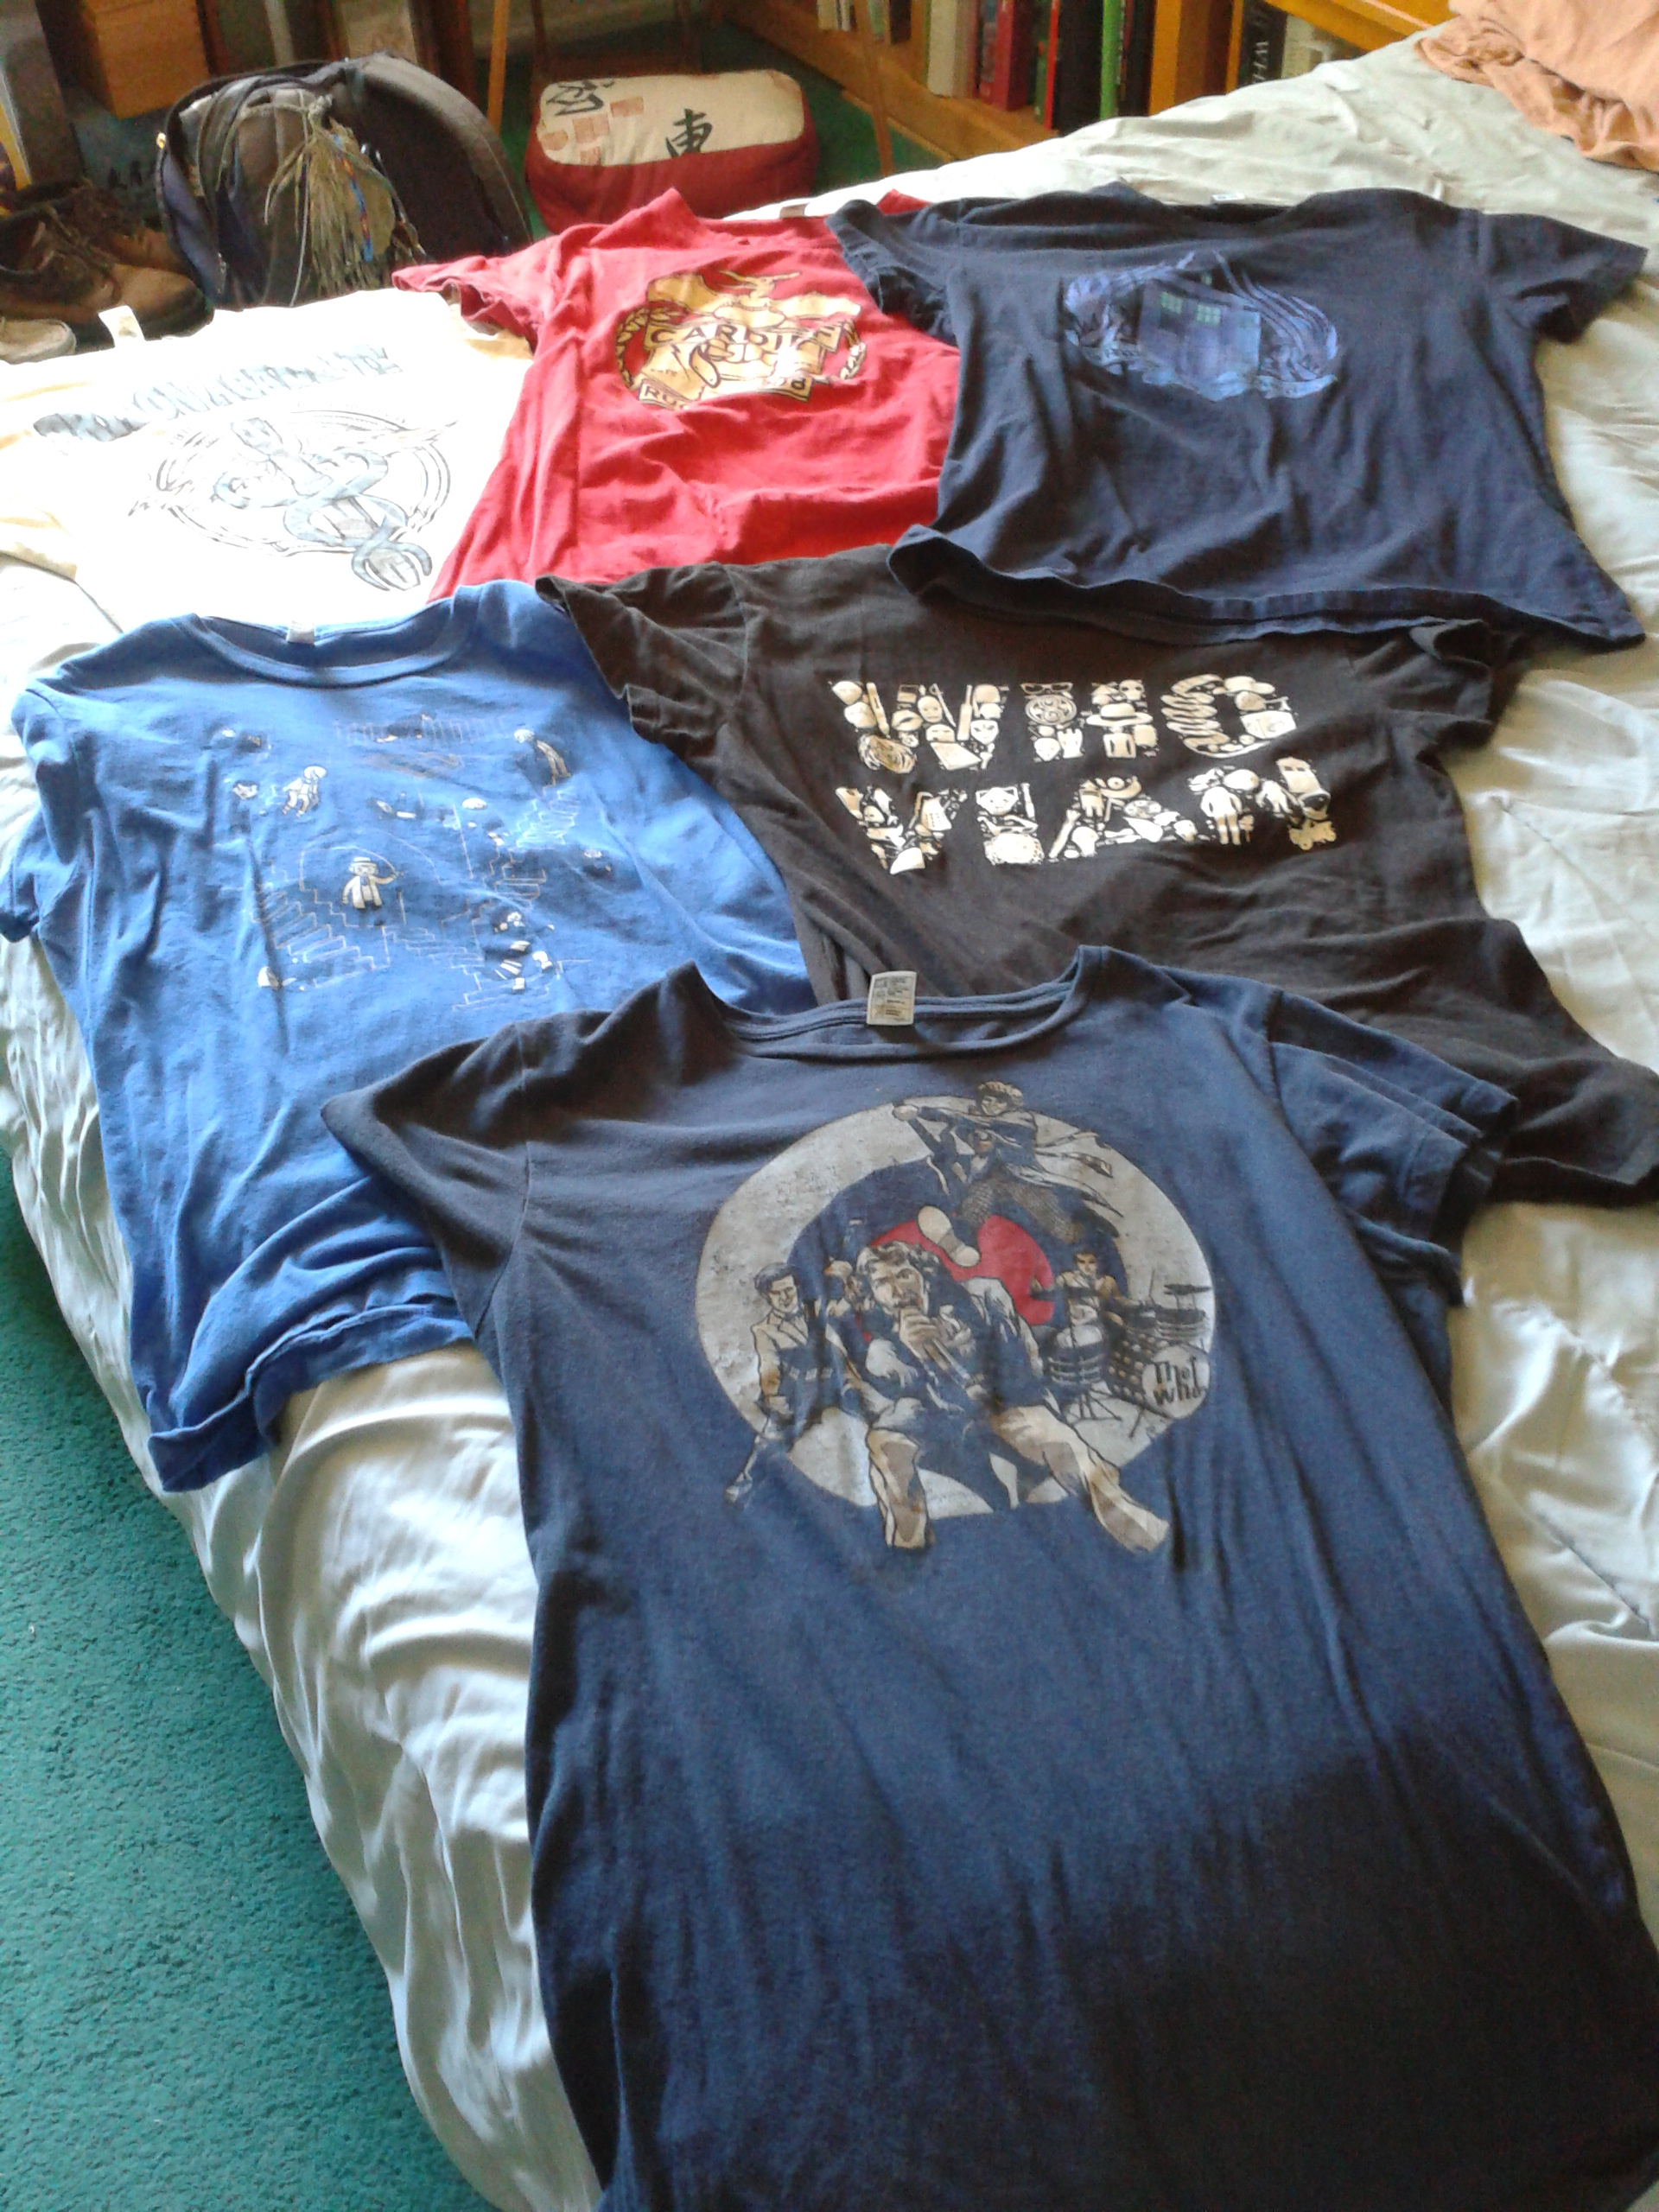 Dr. Who and Torchwood shirts